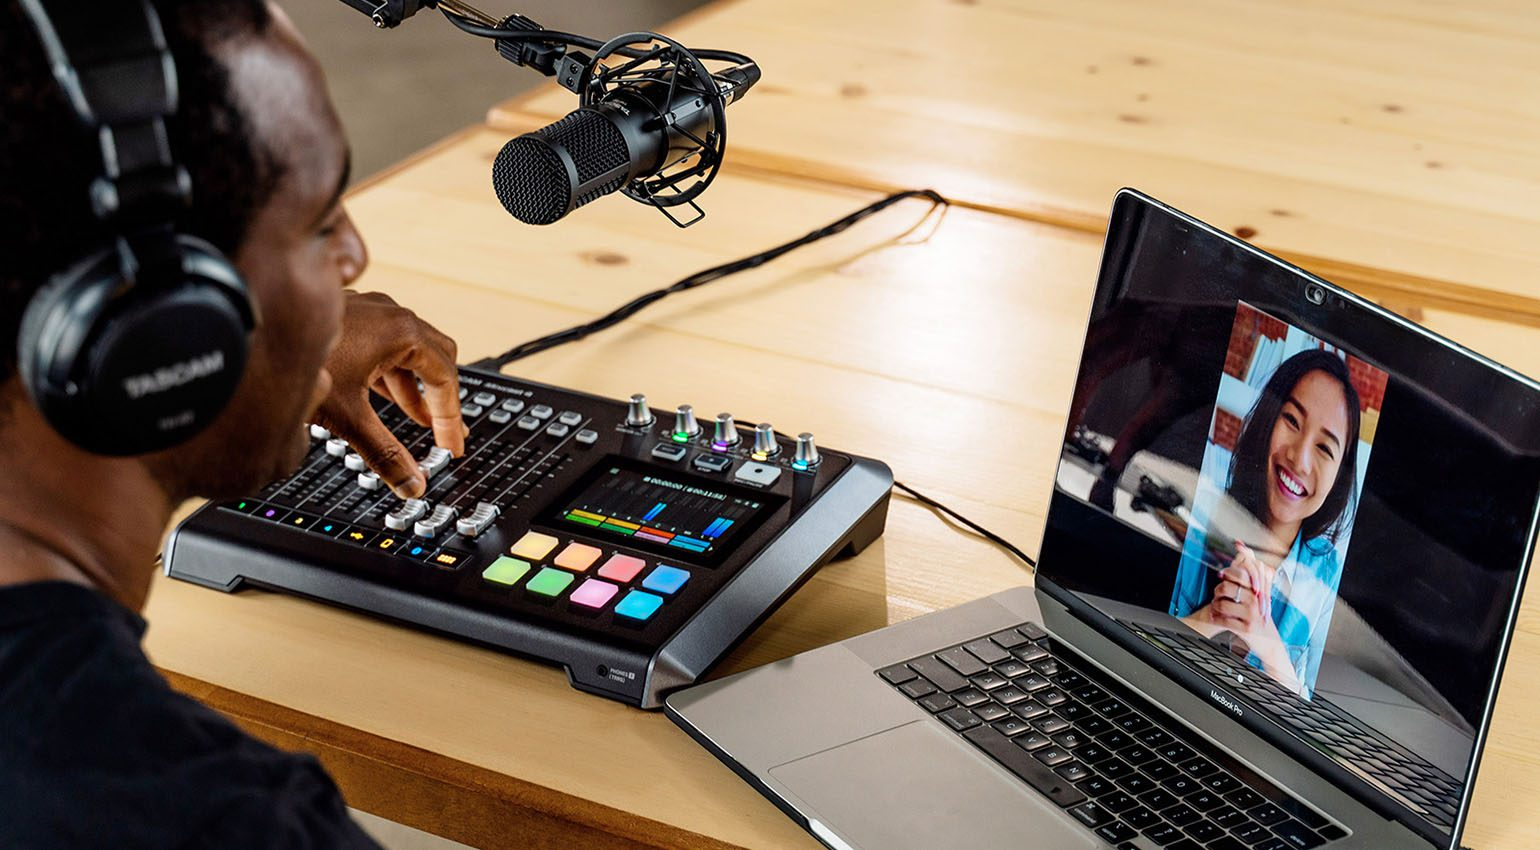 Tascam Mixcast 4 in action